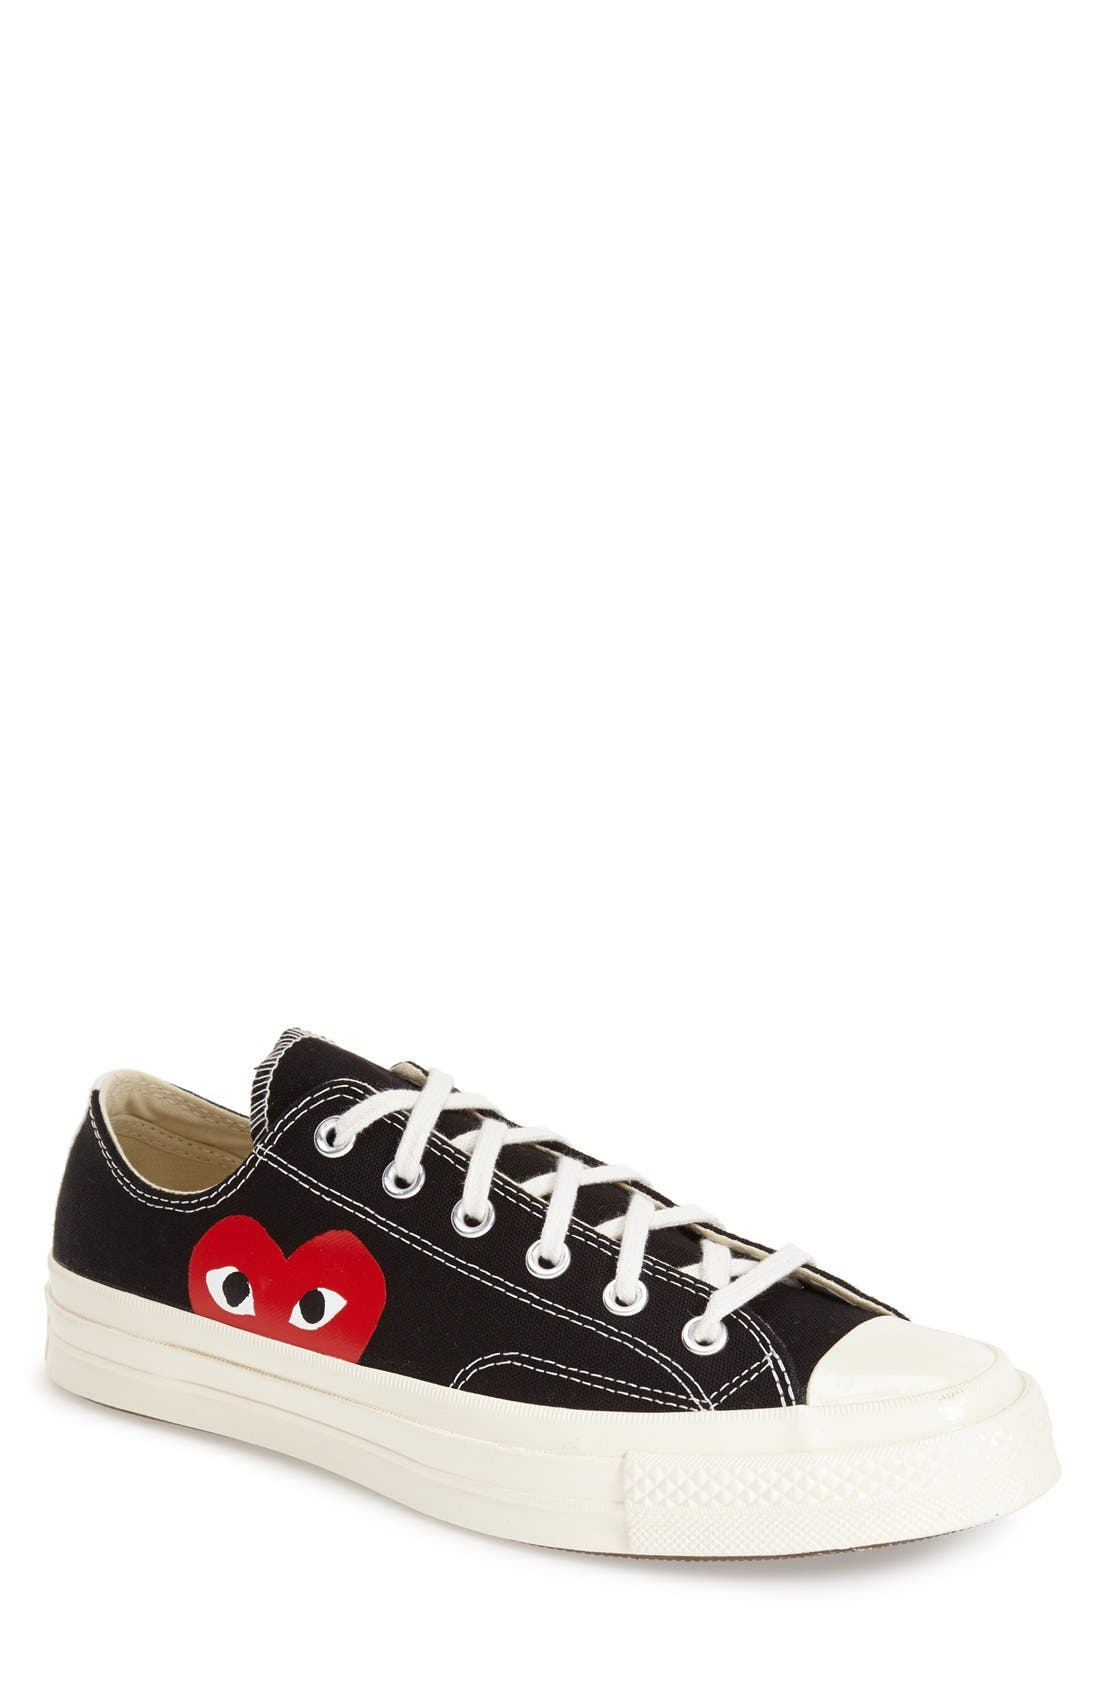 PLAY x Converse Chuck Taylor<sup>®</sup> Low Top Sneaker, Main, color, BLACK CANVAS